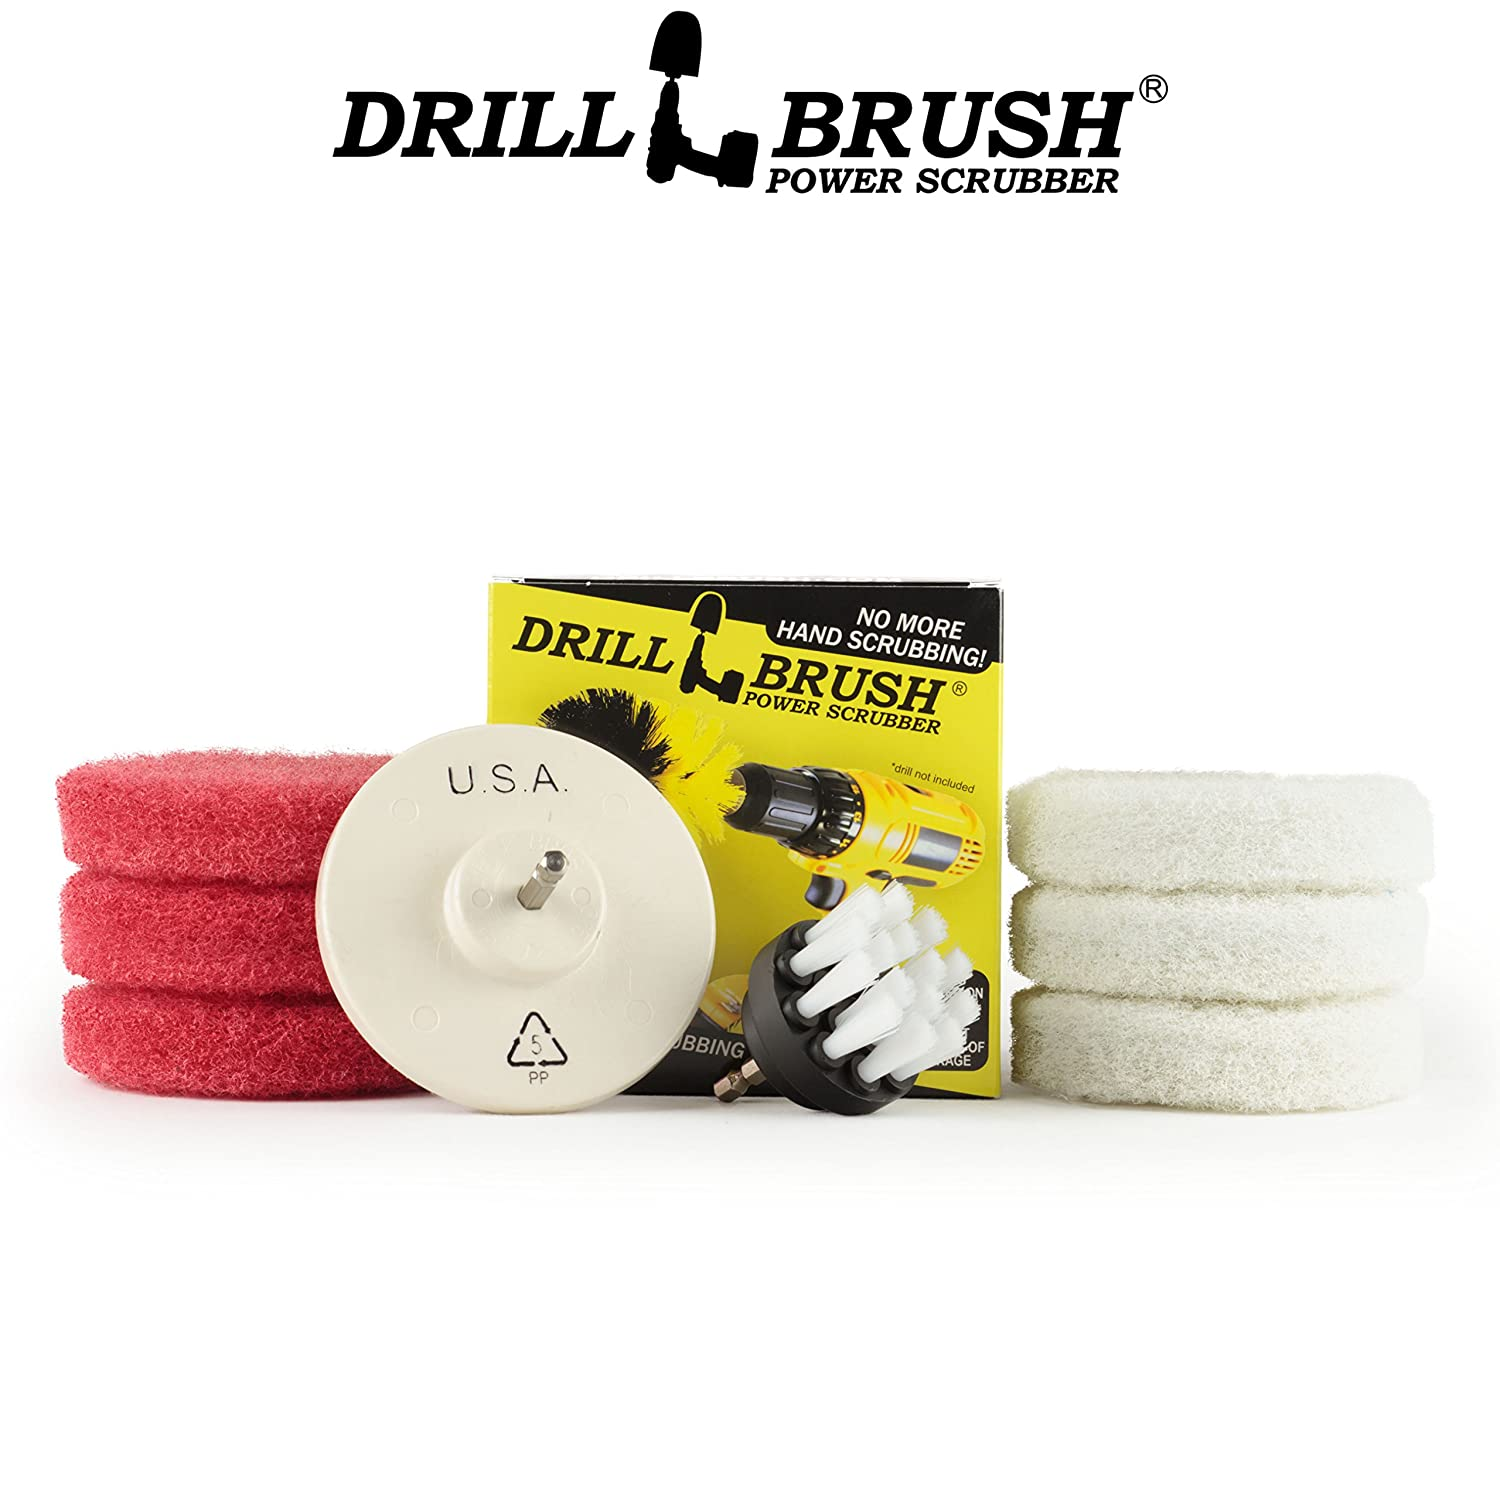 Cleaning Supplies - Bathroom Accessories - Scouring Pad Kit - Grout Cleaner - Scrub Pads - Shower Cleaner - Bathtub -Tile - Bath Mat - Bathroom Sink - Scrubber - Shower Door - Glass Cleaner Drillbrush S2W-4-P6RW-QC-DB